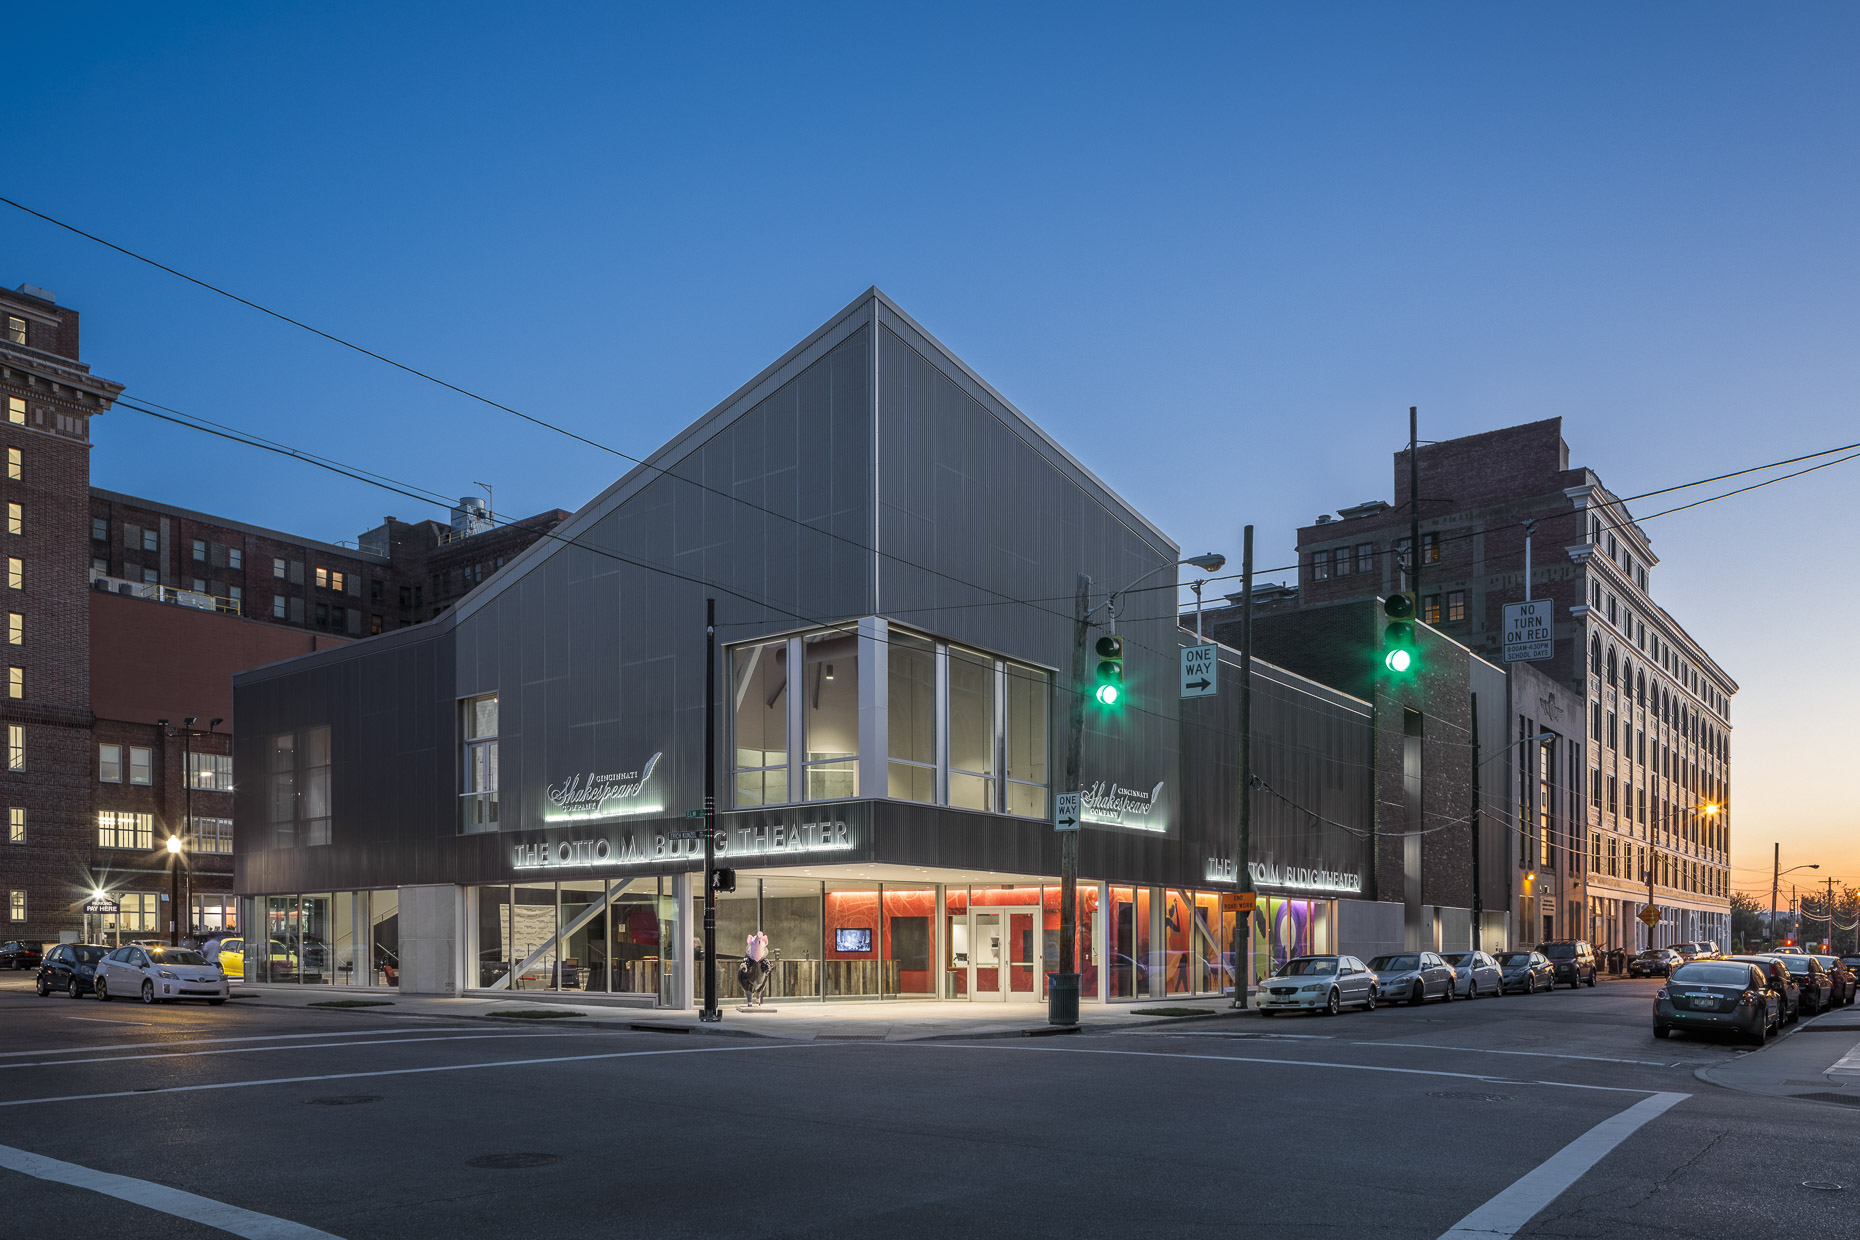 Cincinnati Shakespeare Company Otto M Budig Theater by GBBN photographed by Brad Feinknopf based in Columbus, Ohio